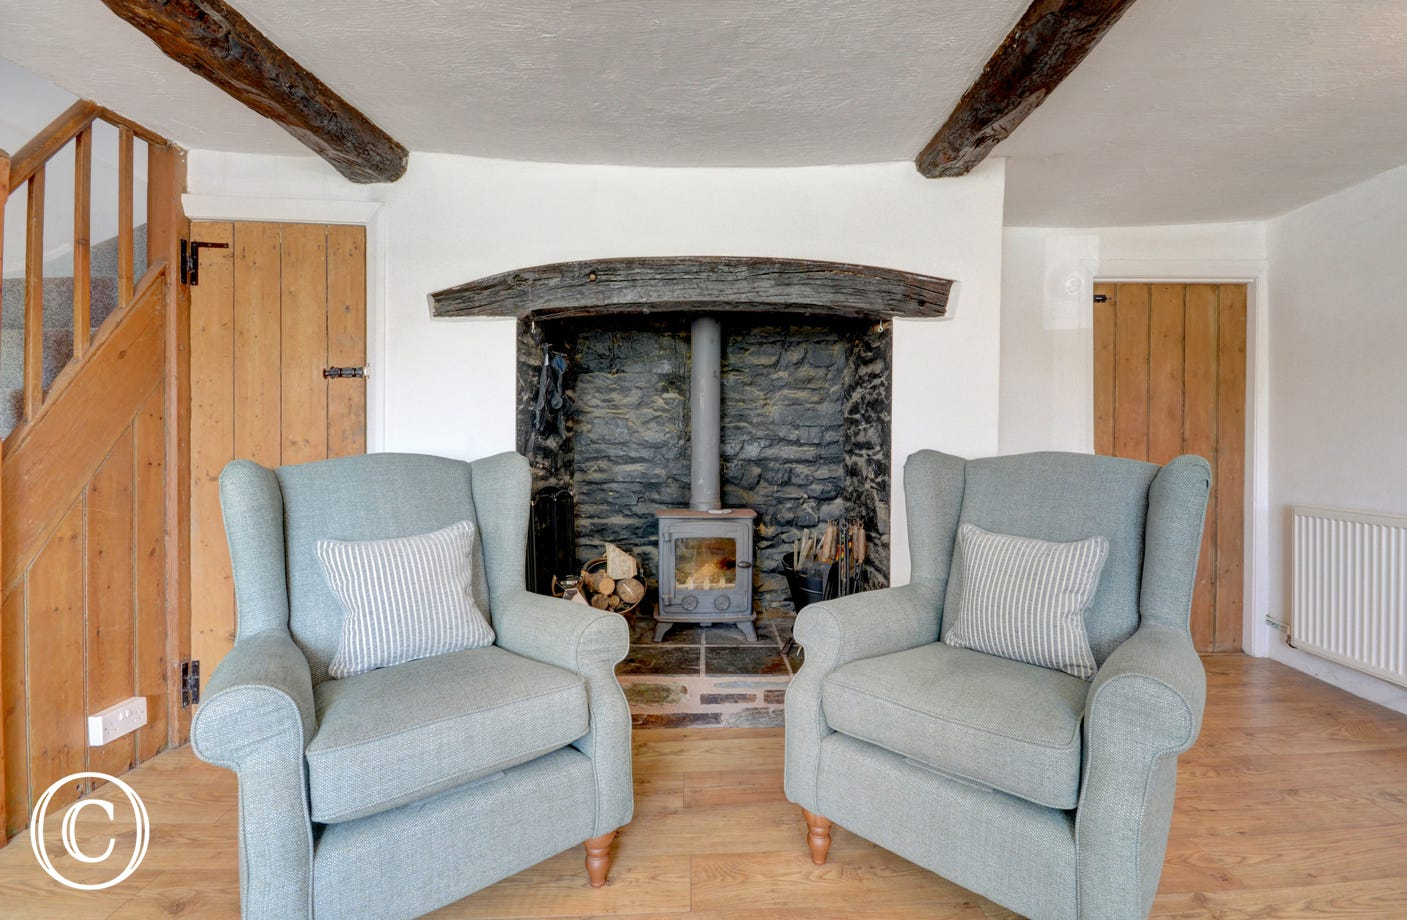 The woodburner will make the cooler evenings warm and cosy